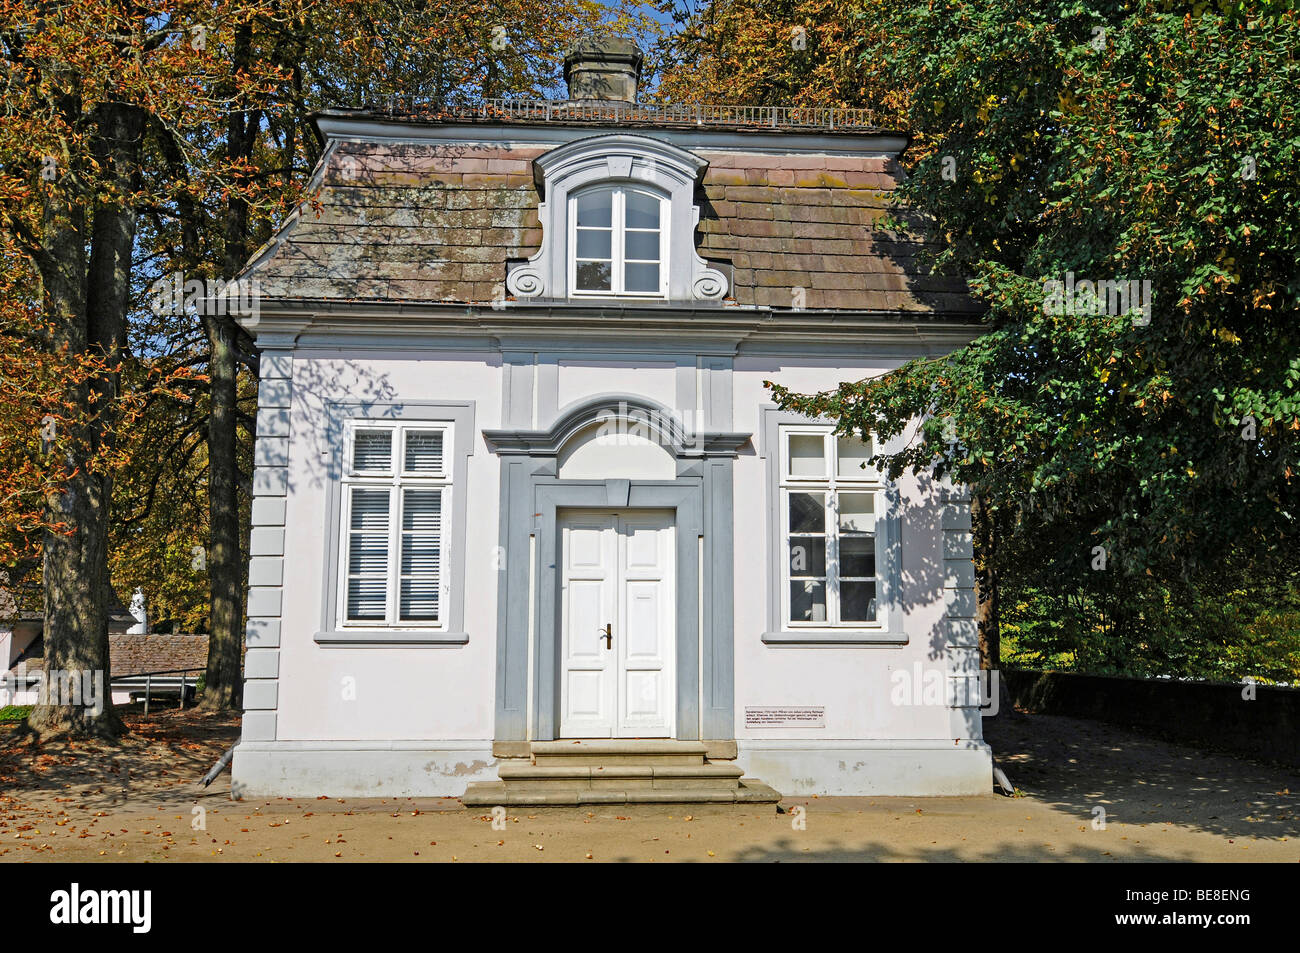 Cavalier house, castle, fortress, classicism, museum, Bad Pyrmont, Lower Saxony, Germany, Europe Stock Photo